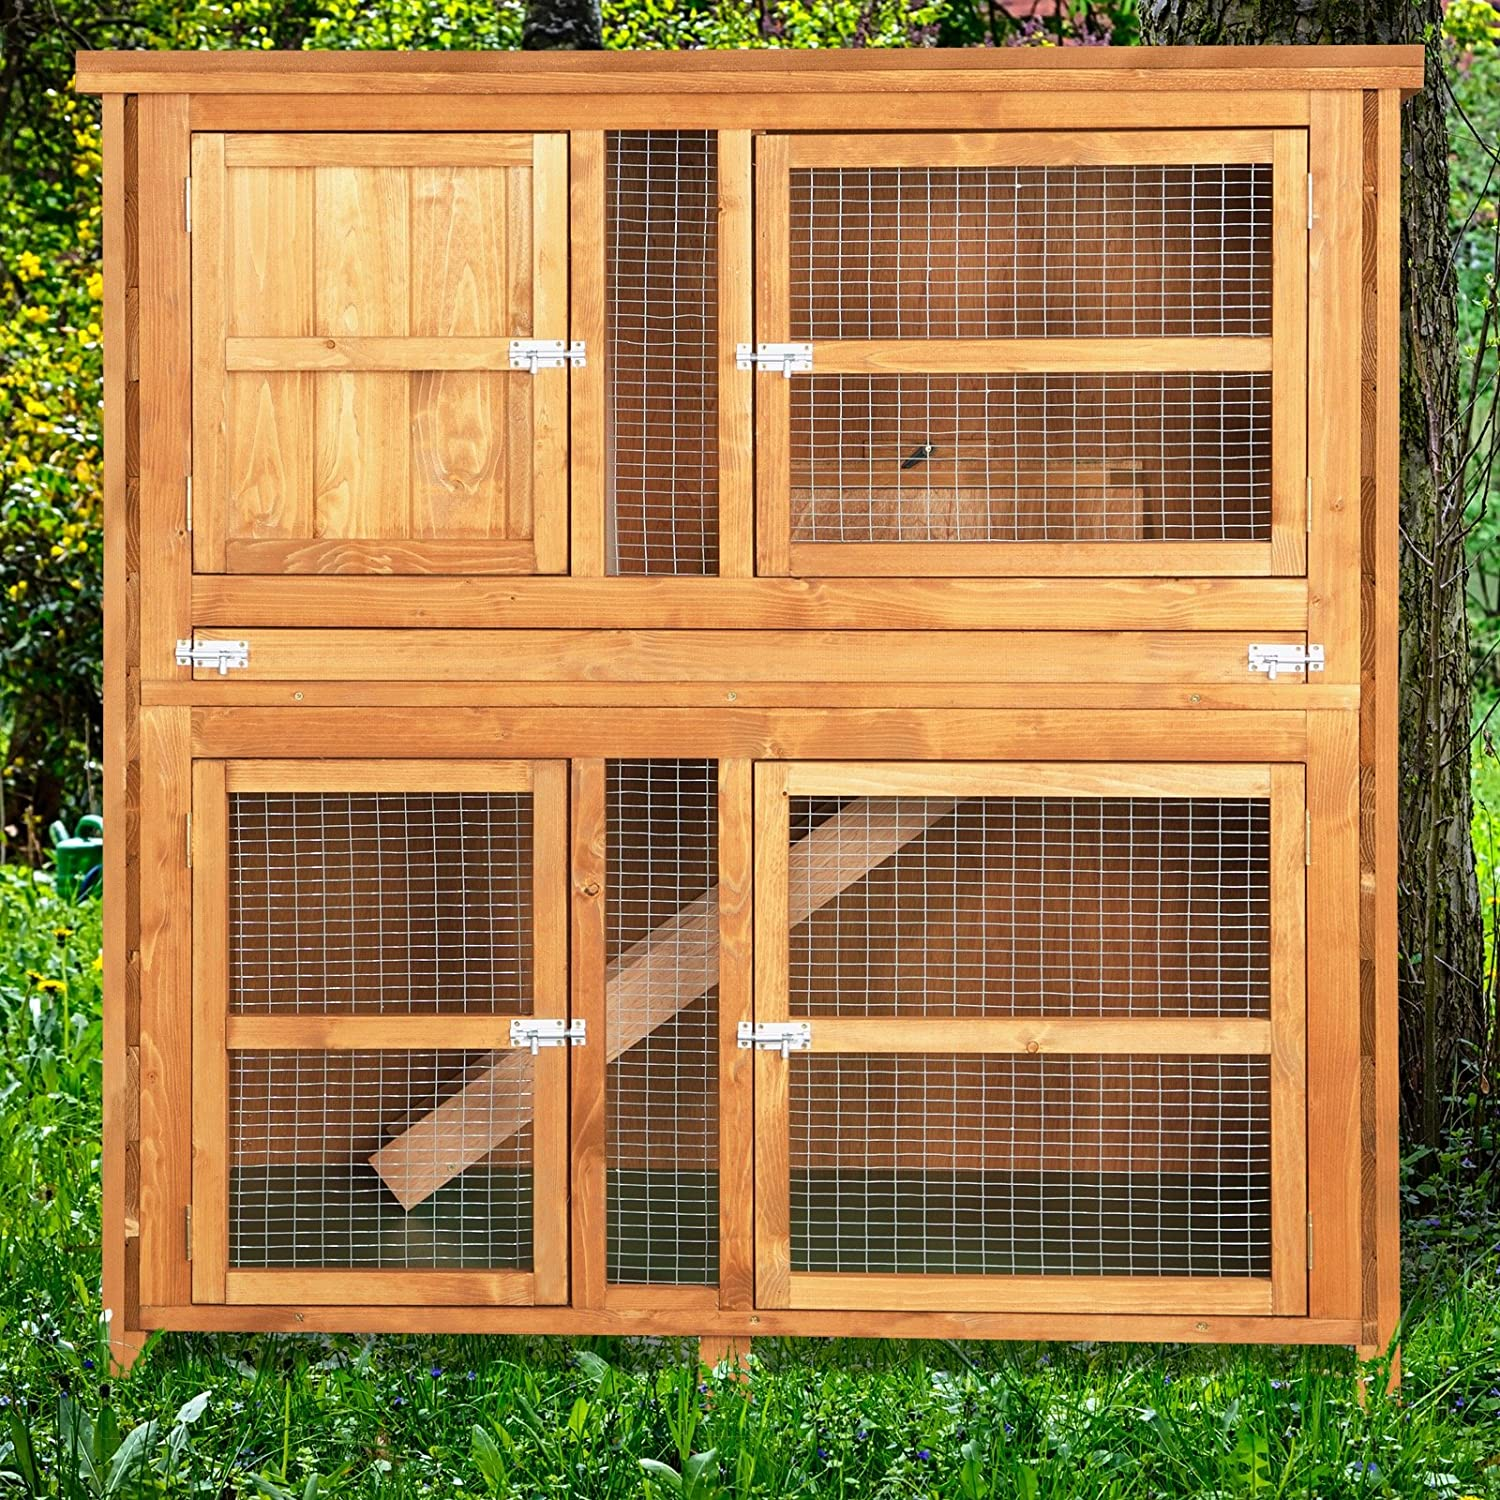 hutch ladder sale kinbor animal hutches small cage handmade bunny wooden rabbit itm w pet house for